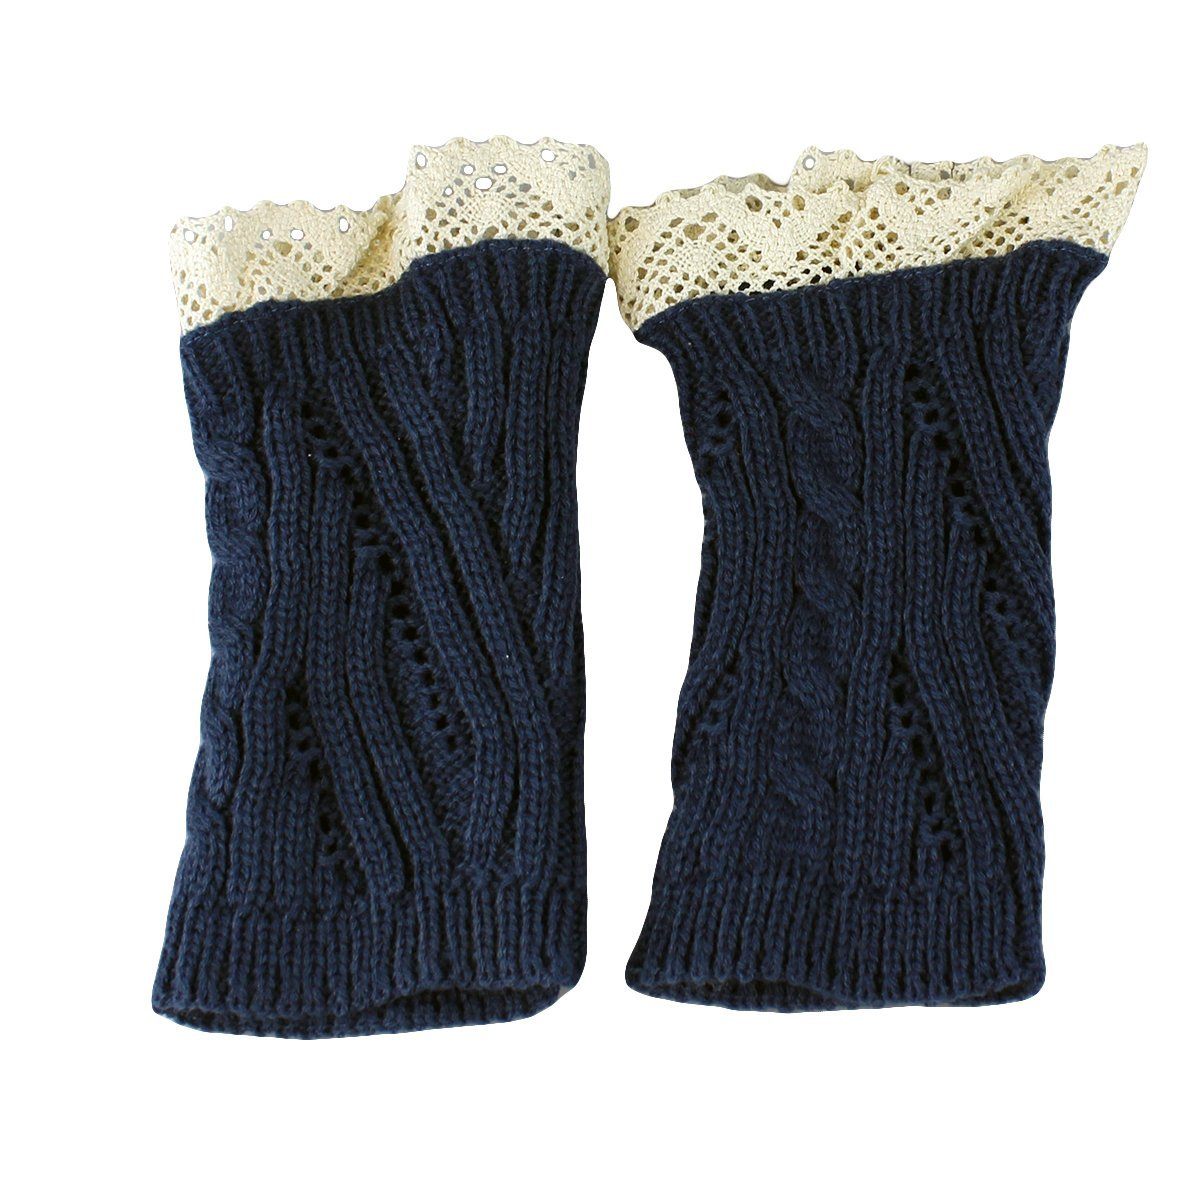 Knit Boot Cuff Topper Liner Leg Warmer With Lace Trim Mixed Pattern, Navy